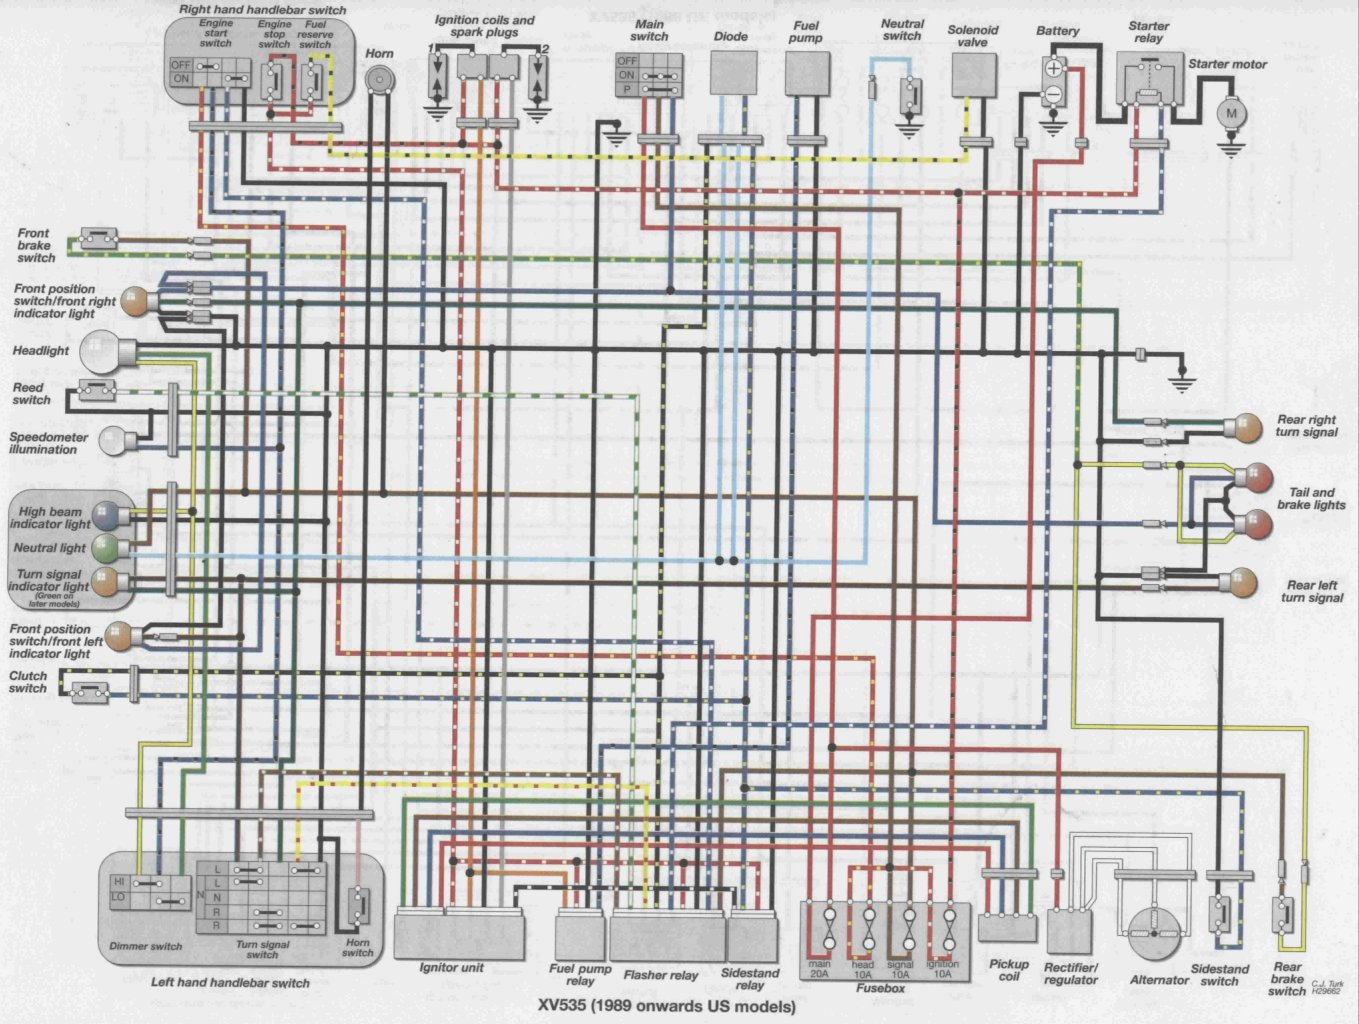 89_96_us_XV535 viragotechforum com \u2022 view topic xv535sh wiring virago wiring diagram at reclaimingppi.co